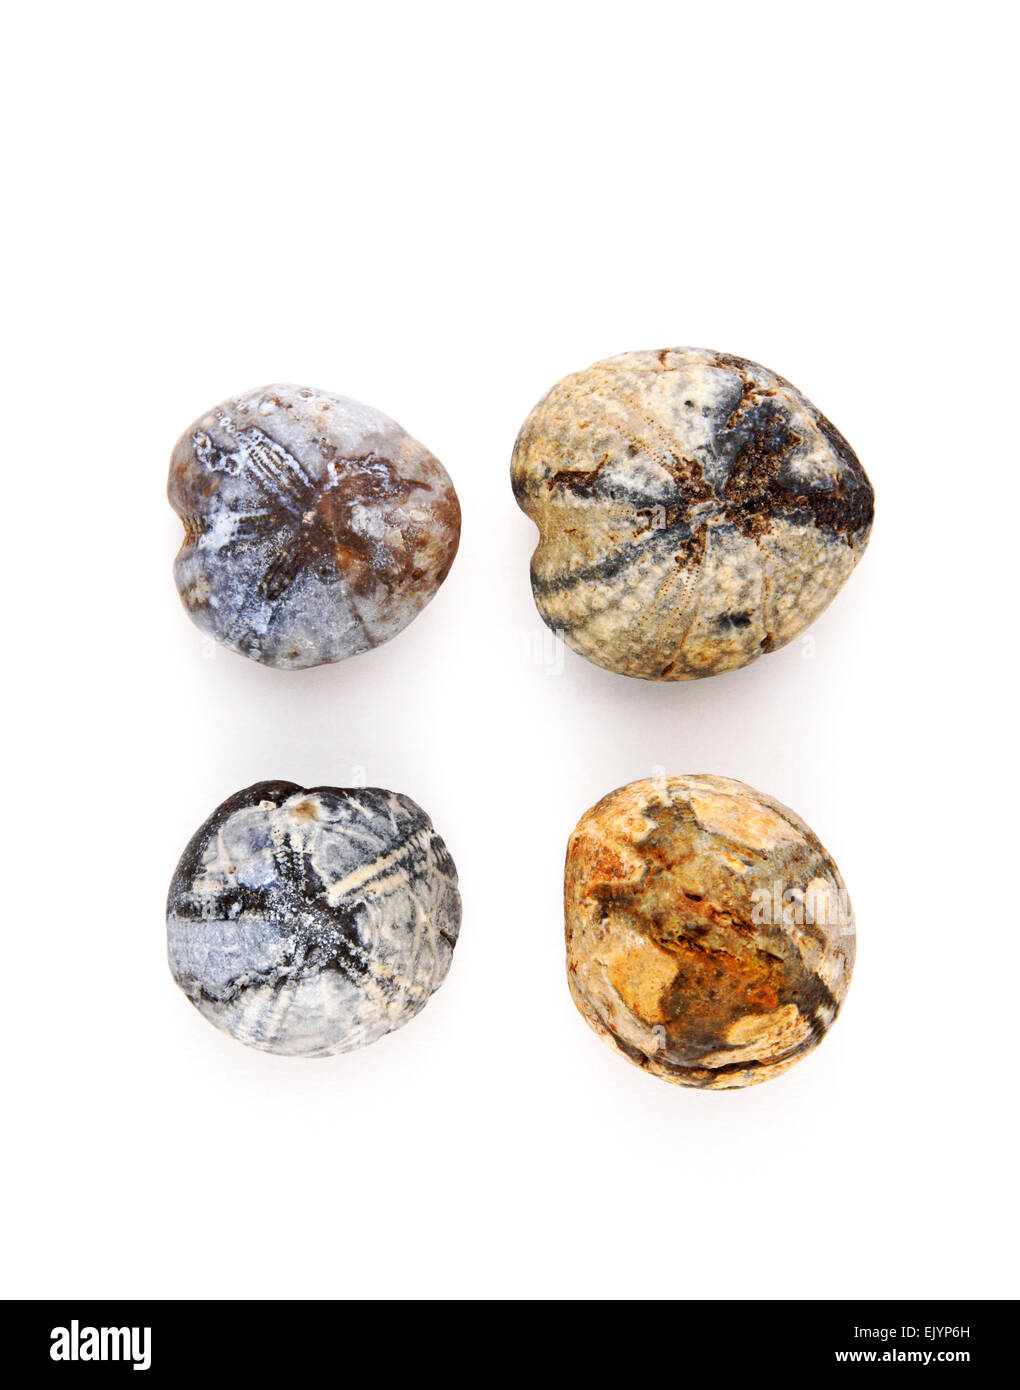 A selection of fossil sea urchins collected from beaches in East Norfolk, England, United Kingdom. - Stock Image